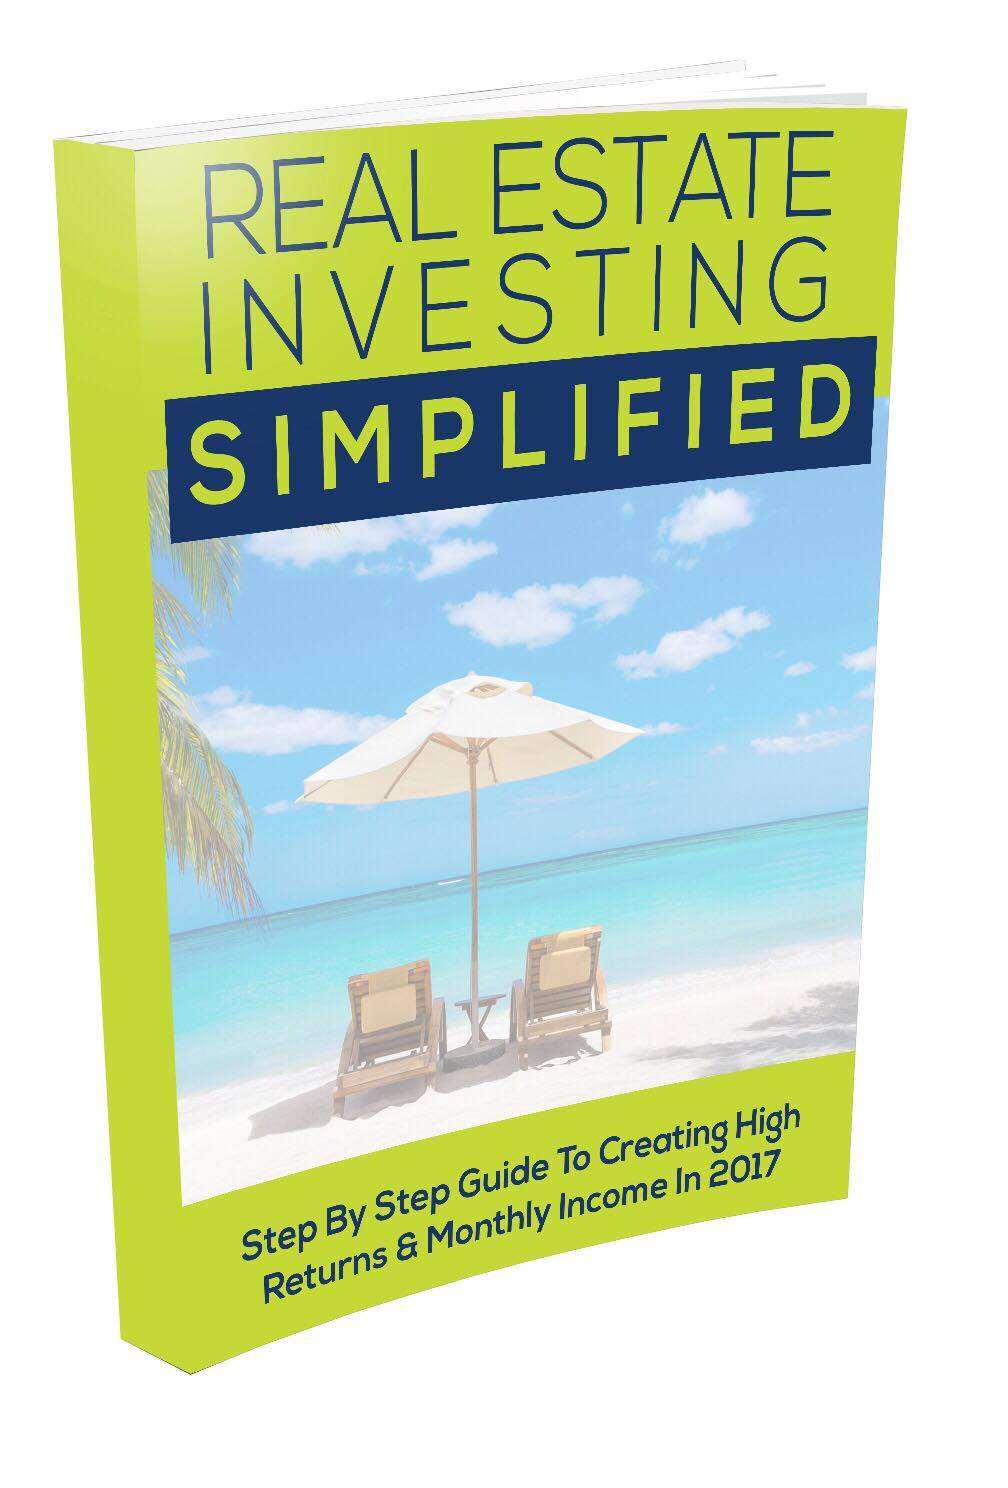 Real Estate Investing Simplified Report